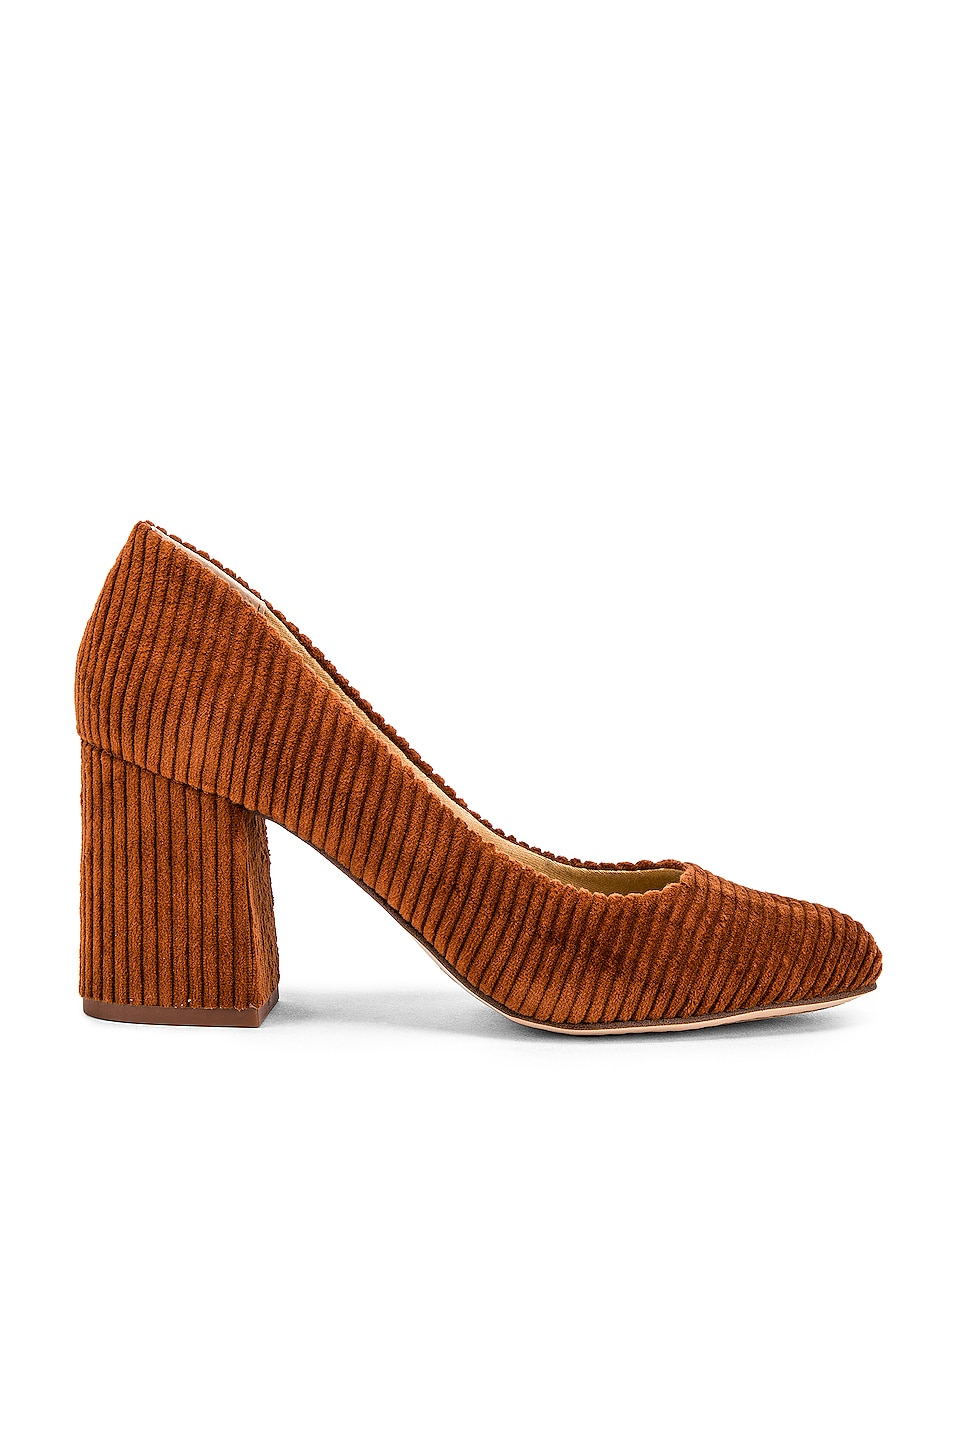 Splendid Hector Heel in Whiskey